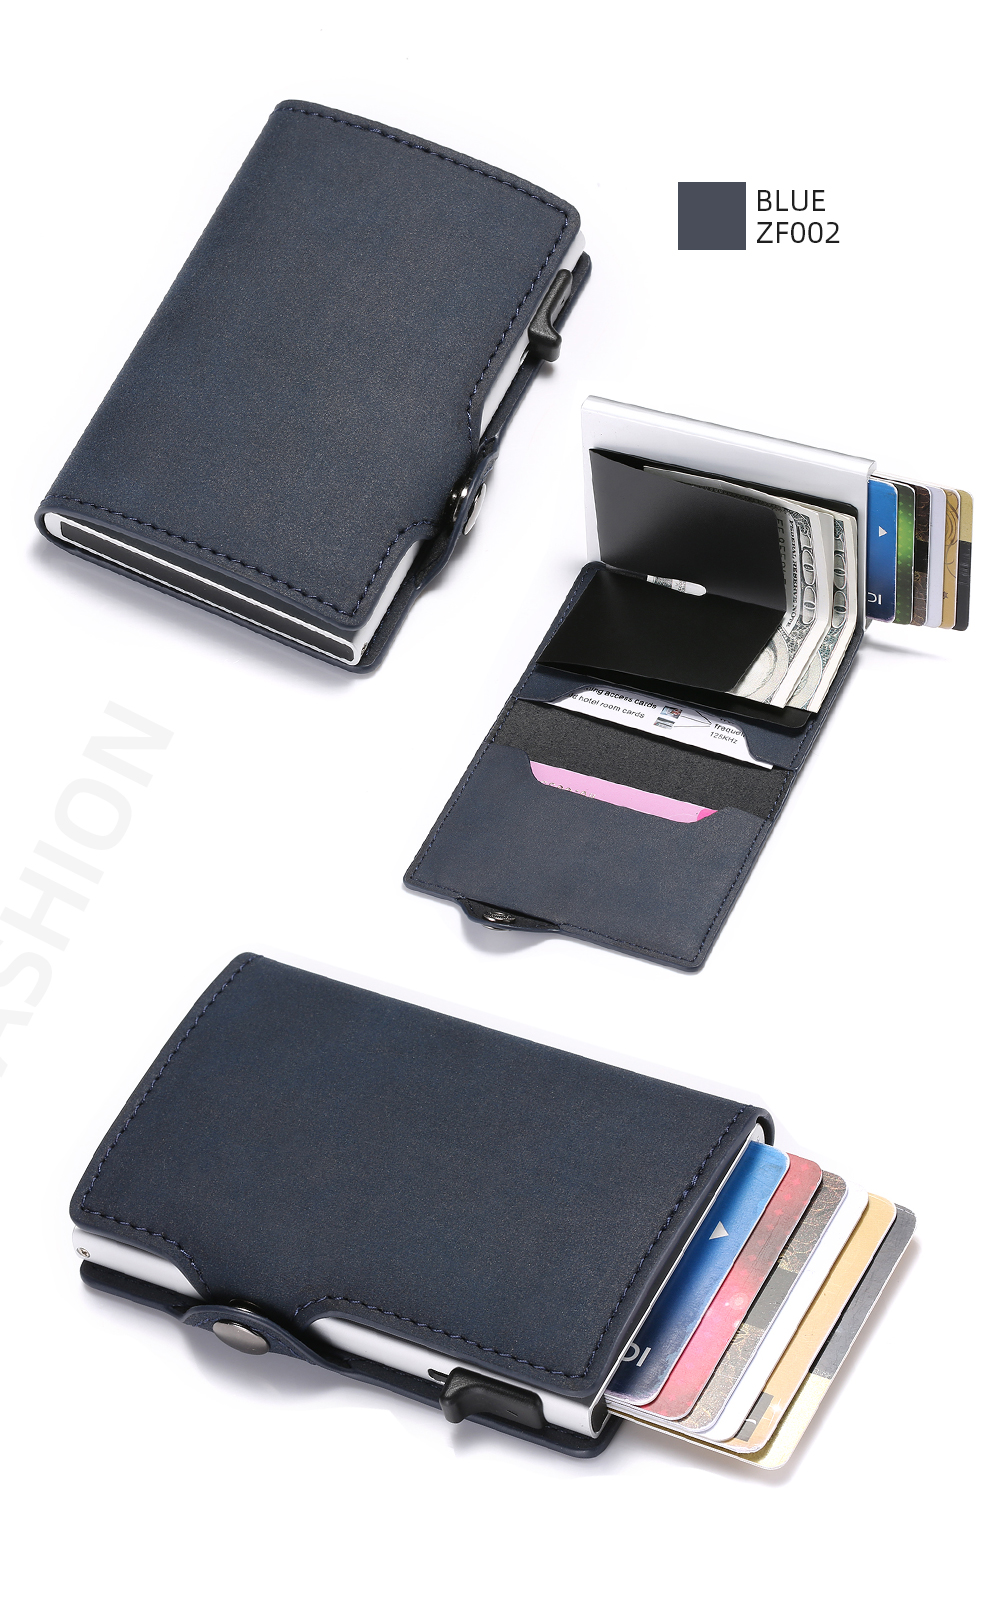 Hfd4169bf867745cea618d1e7988ce384R - BISI GORO Single Box Card Holder PU Leather Card Wallet New Men RFID Blocking Aluminum Smart Multifunction Slim Wallet Card Case